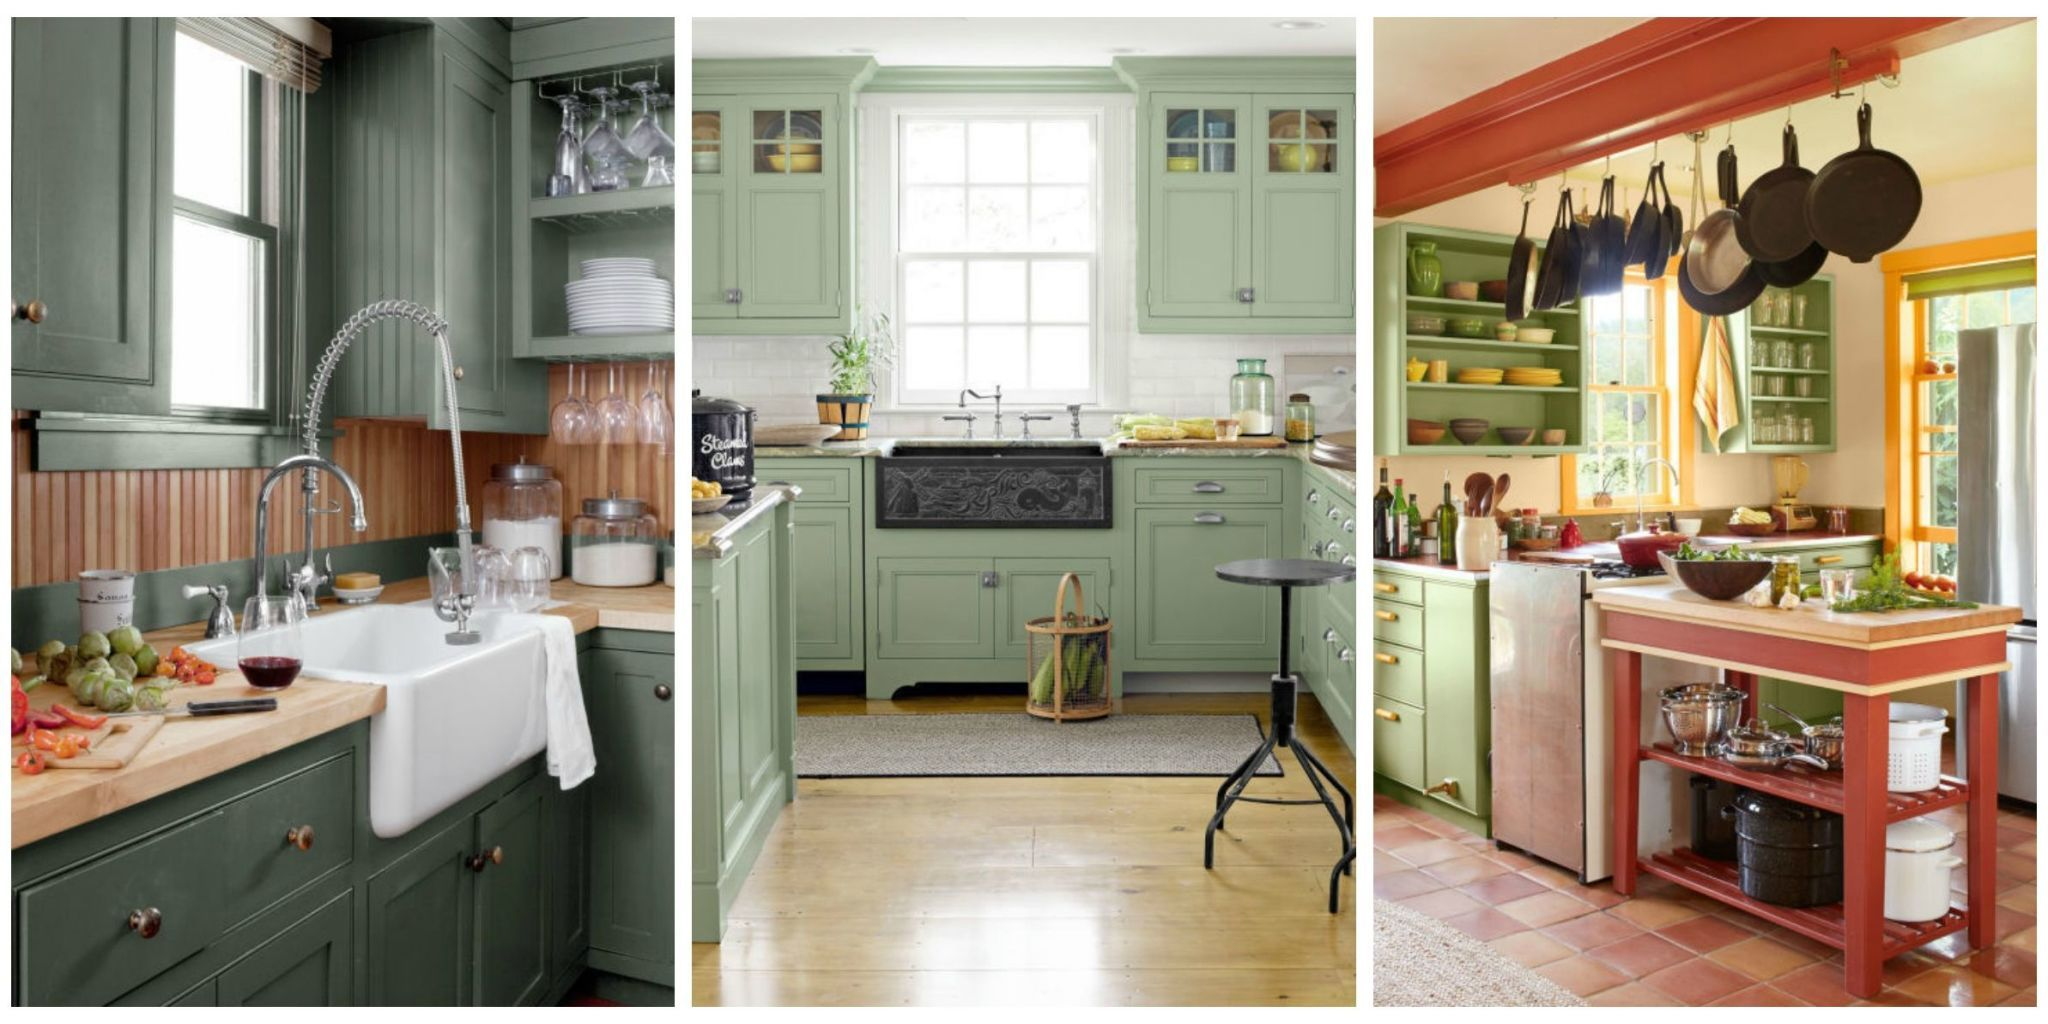 With Paint Options Ranging From Mint To Sage, These Green Kitchen Ideas  Will Make Any Cooking ...